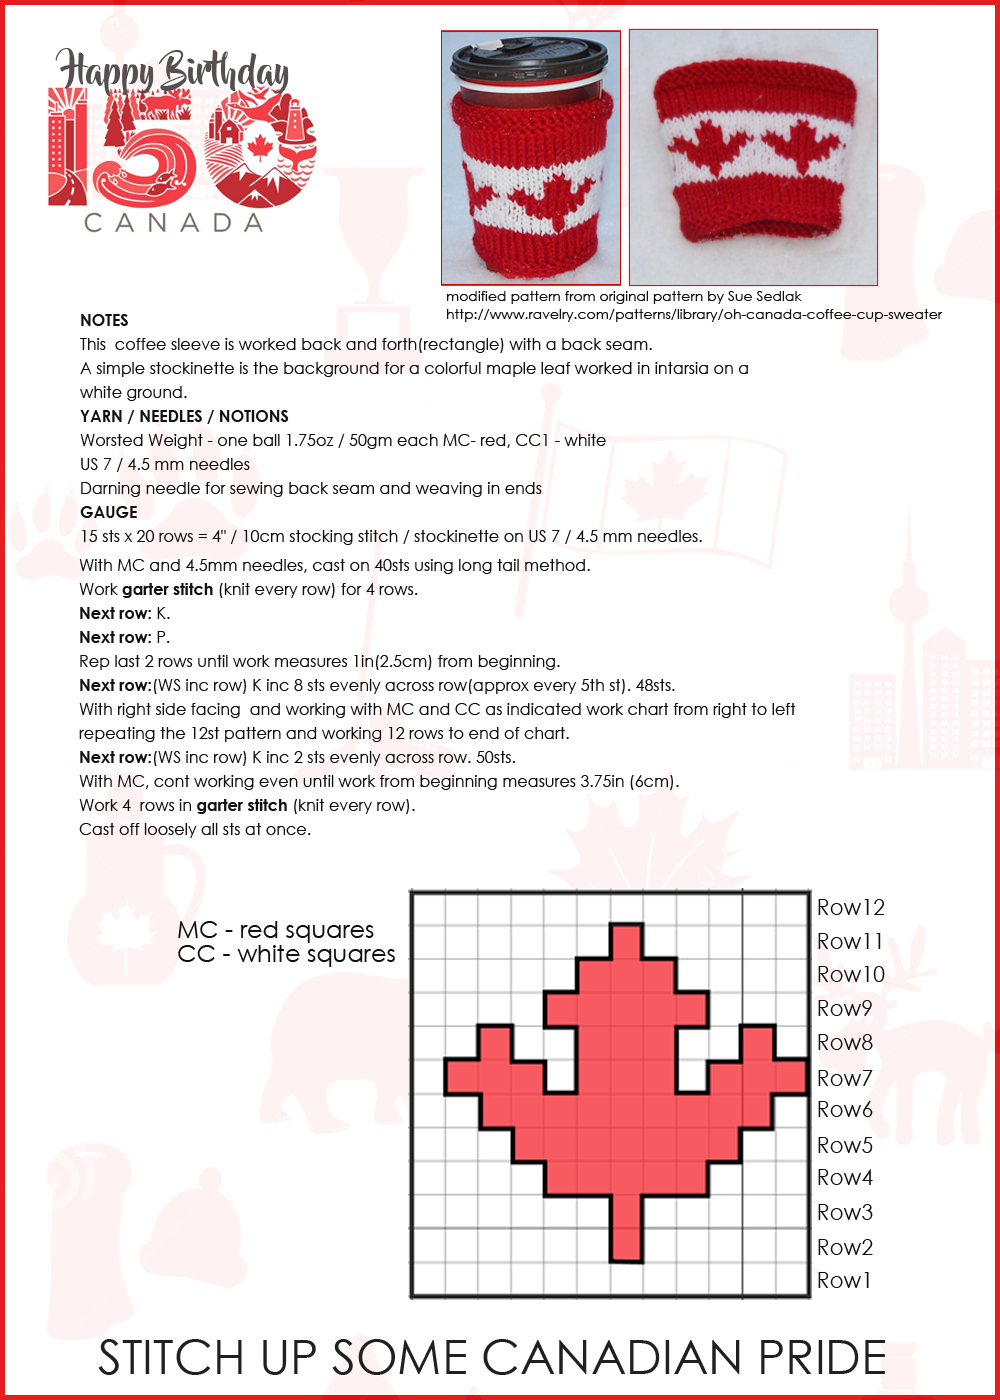 dd771ba3c525b Click on images of past posts featuring easy sweater patterns for beginners